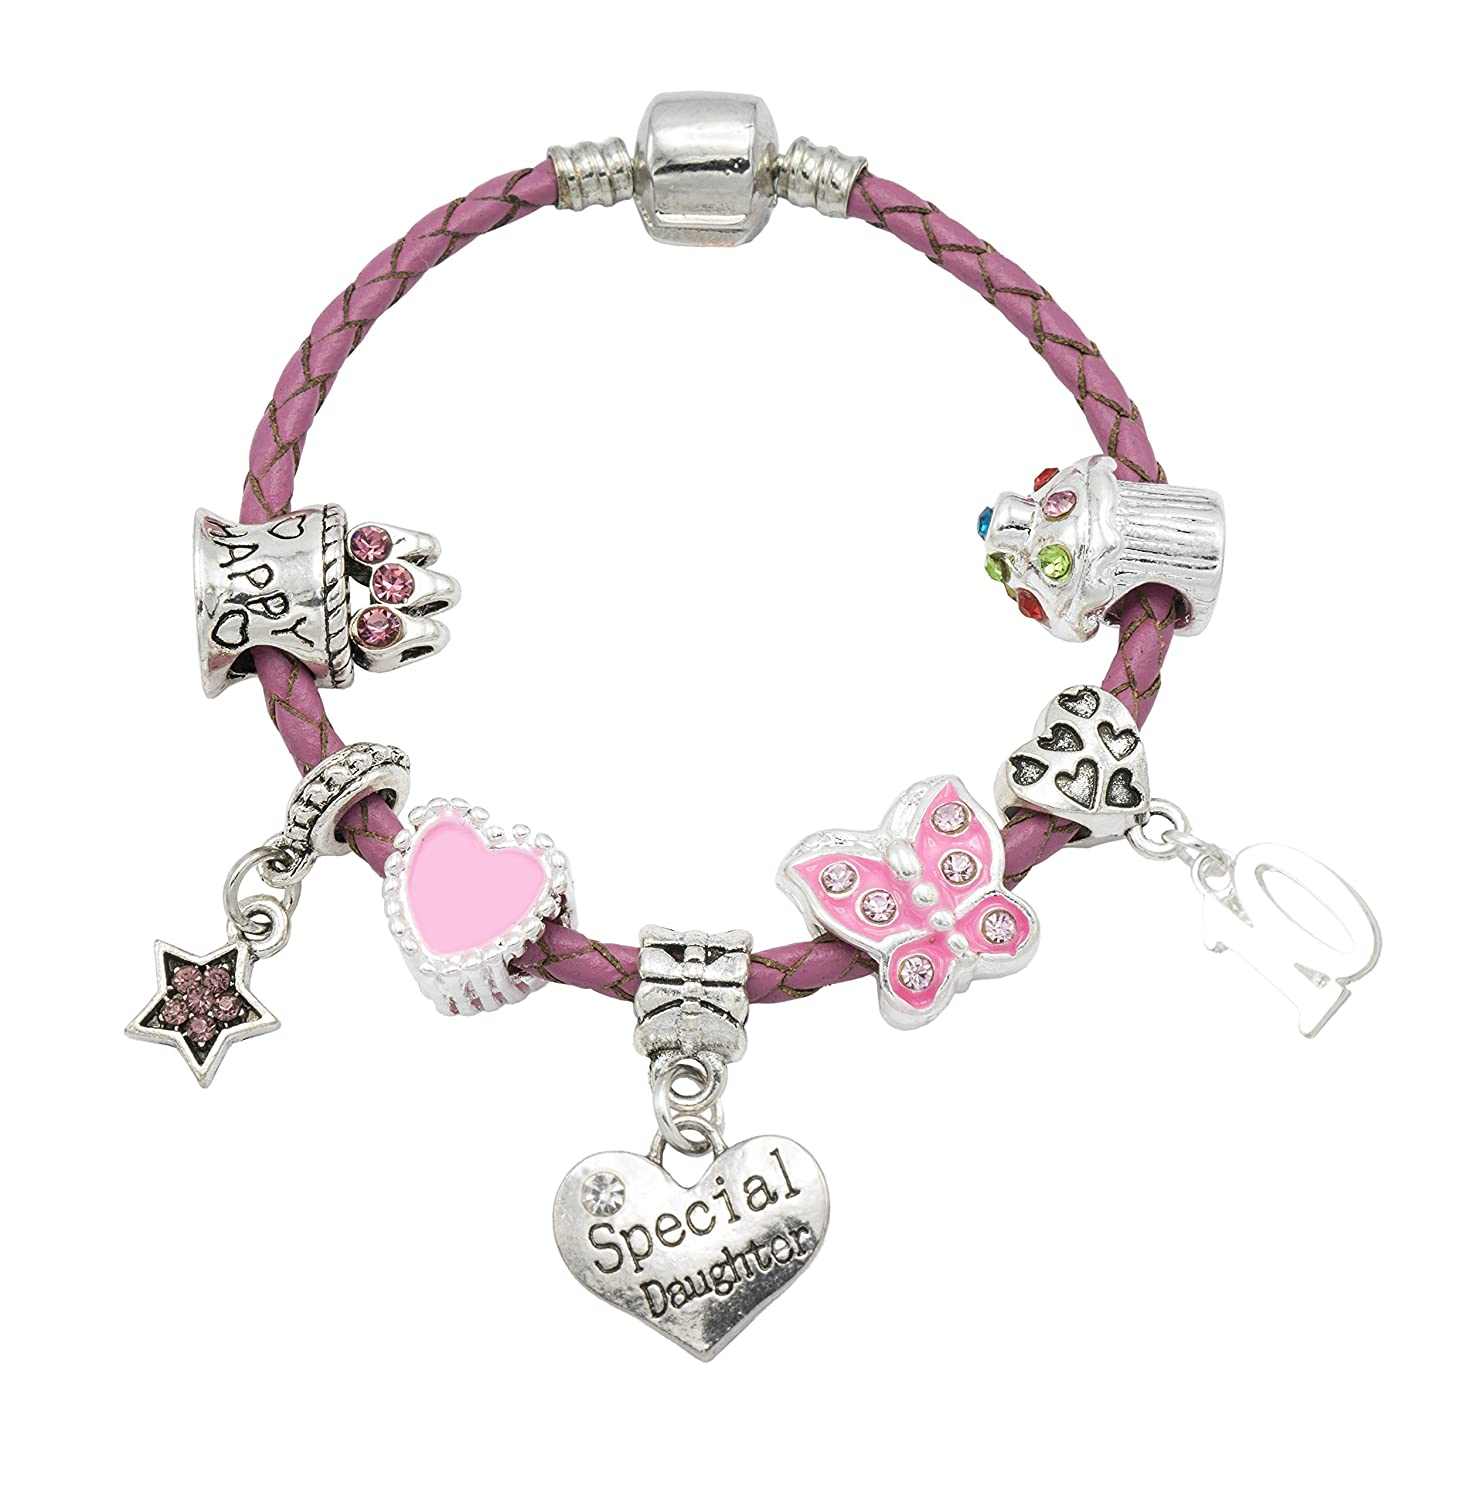 'Special Daughter' - Happy 10th Birthday Bracelet For Girls with Gift Box - Girls Jewellery Jewellery Hut BRSpecial Daughter10-17